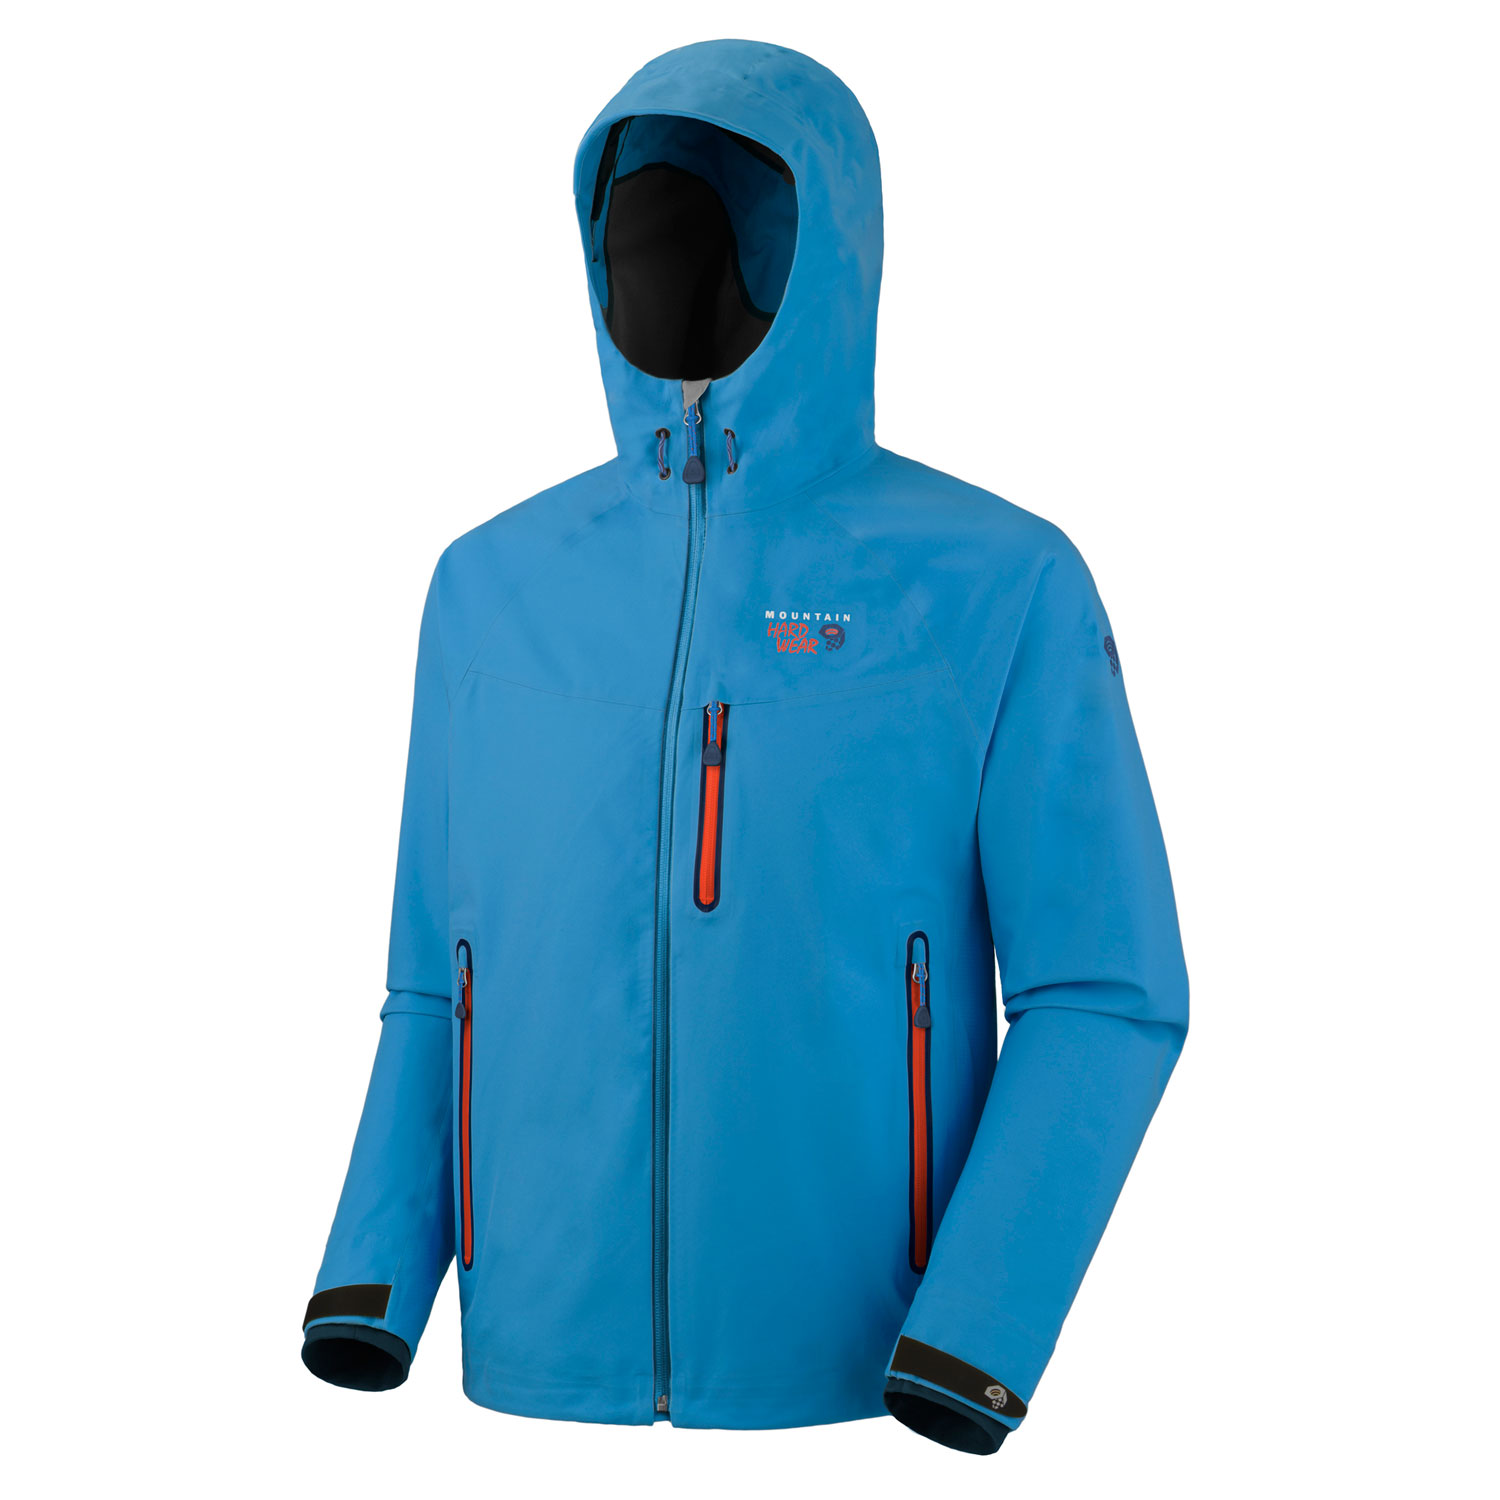 Mountain Hardwear Kepler Softshell Jacket Blue Horizon - $220.95